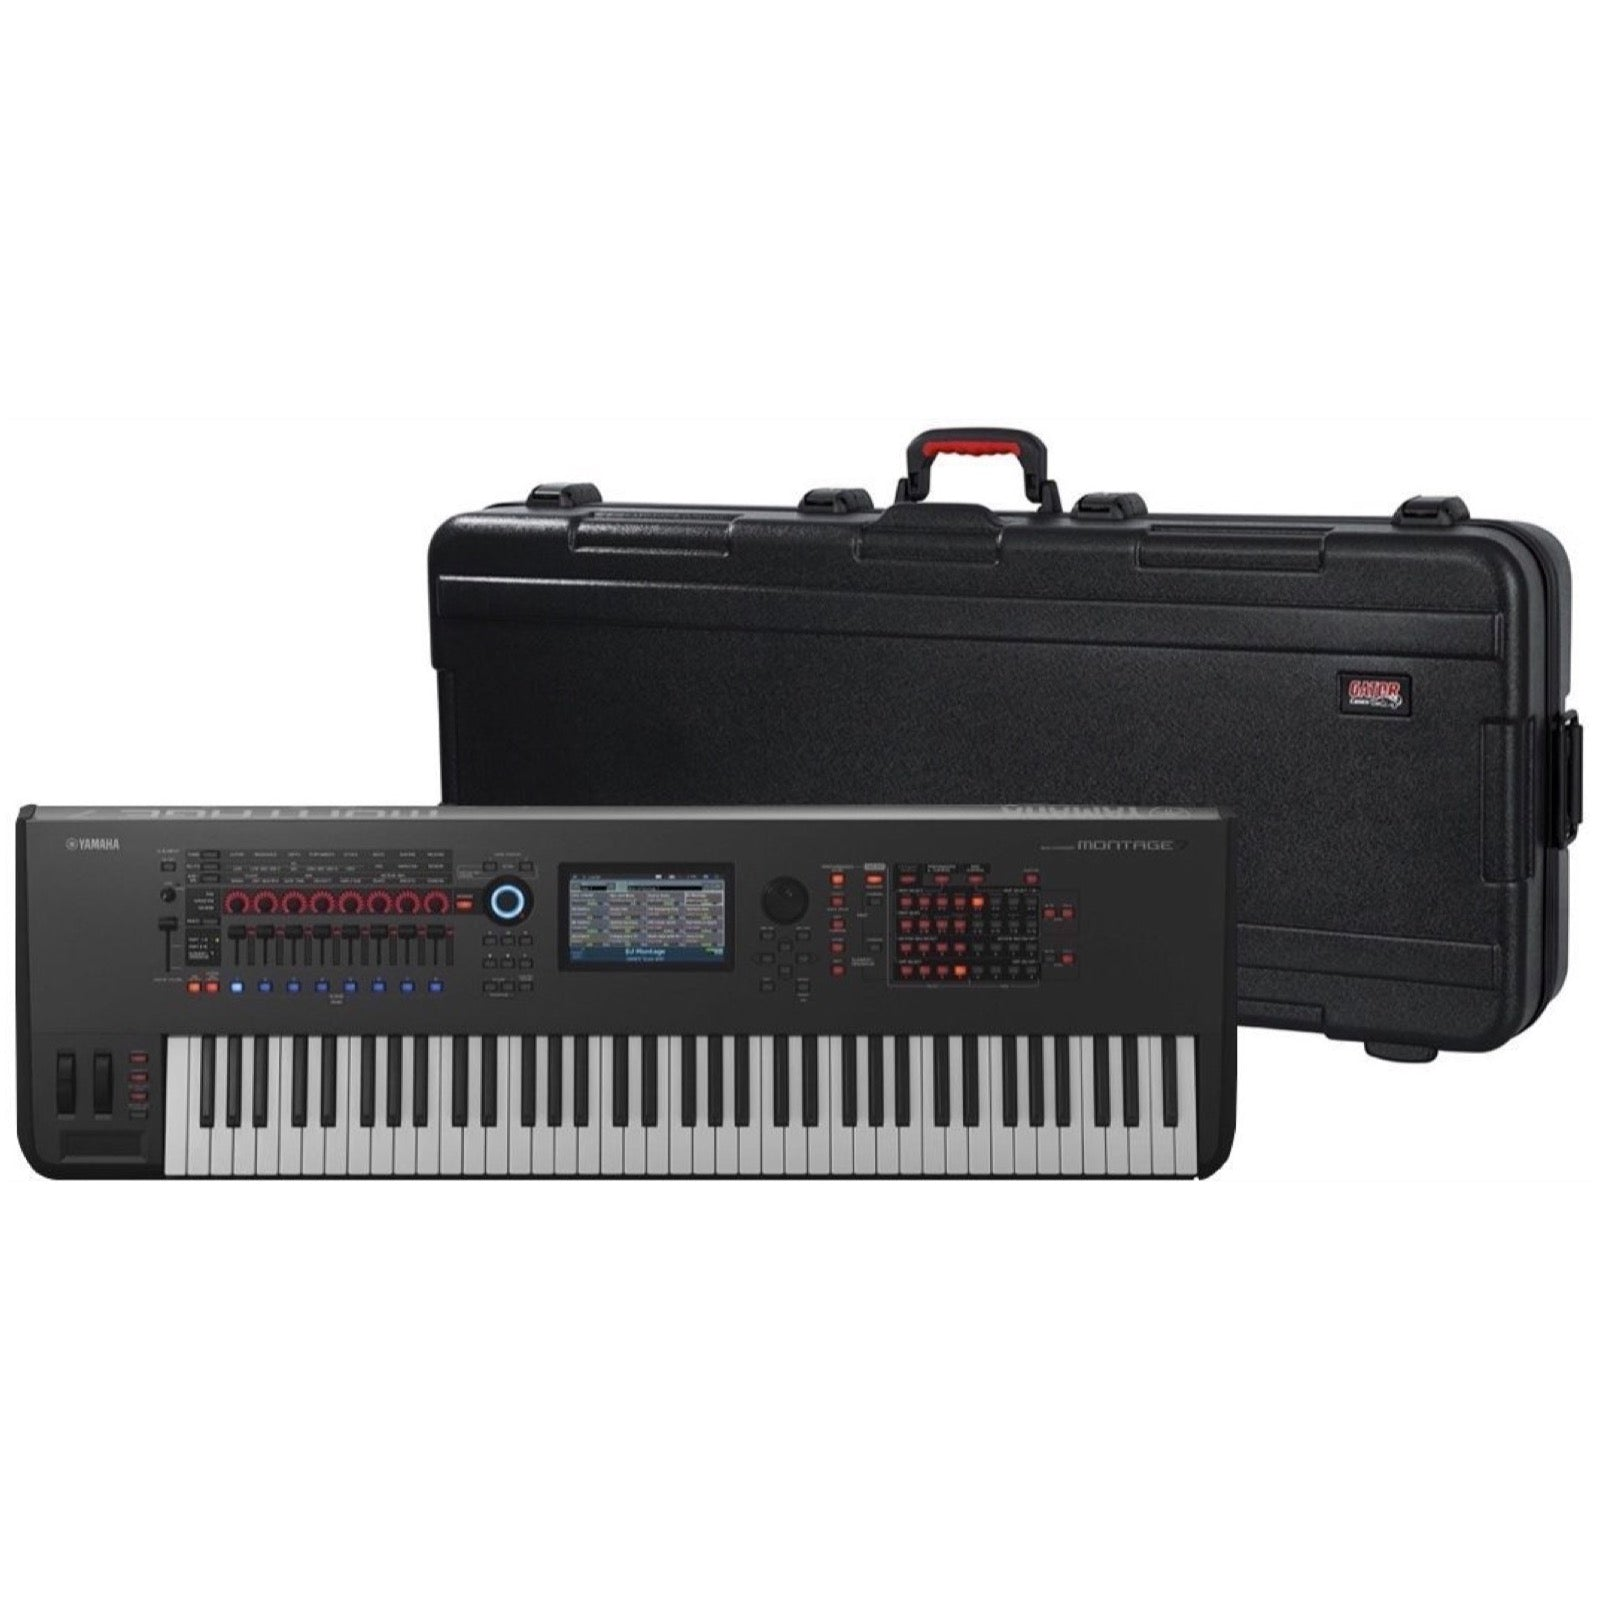 Yamaha Montage 7 Keyboard Synthesizer, 76-Key, Black, with Gator GTSA-KEY76 Keyboard Case